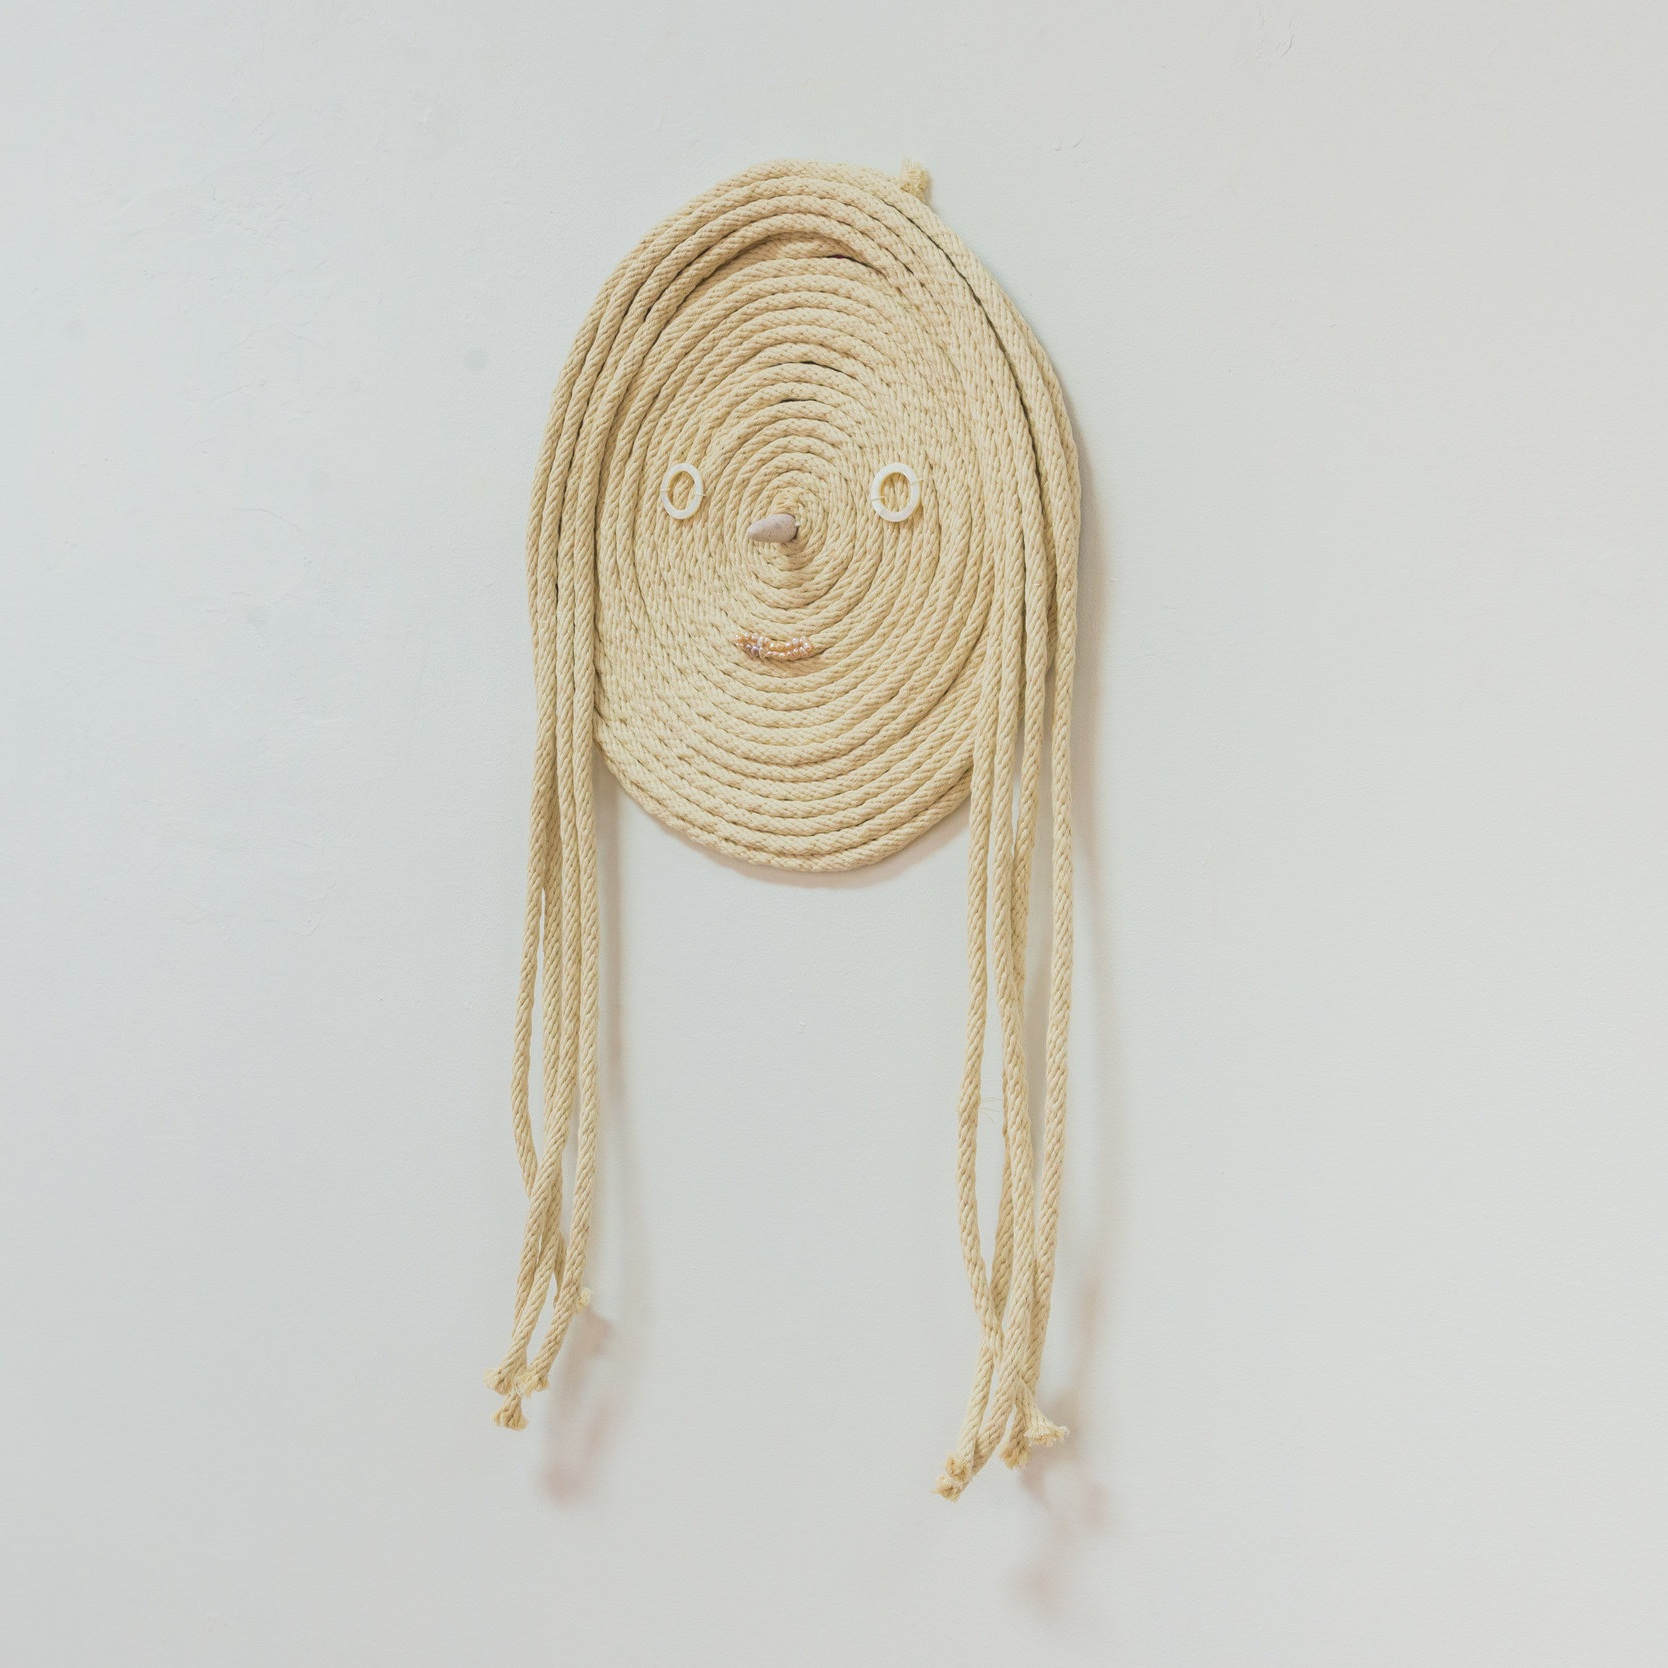 Spectre (Blaize) , 2019 Cotton Sash Cord, shell, polymer clay, freshwater pearls